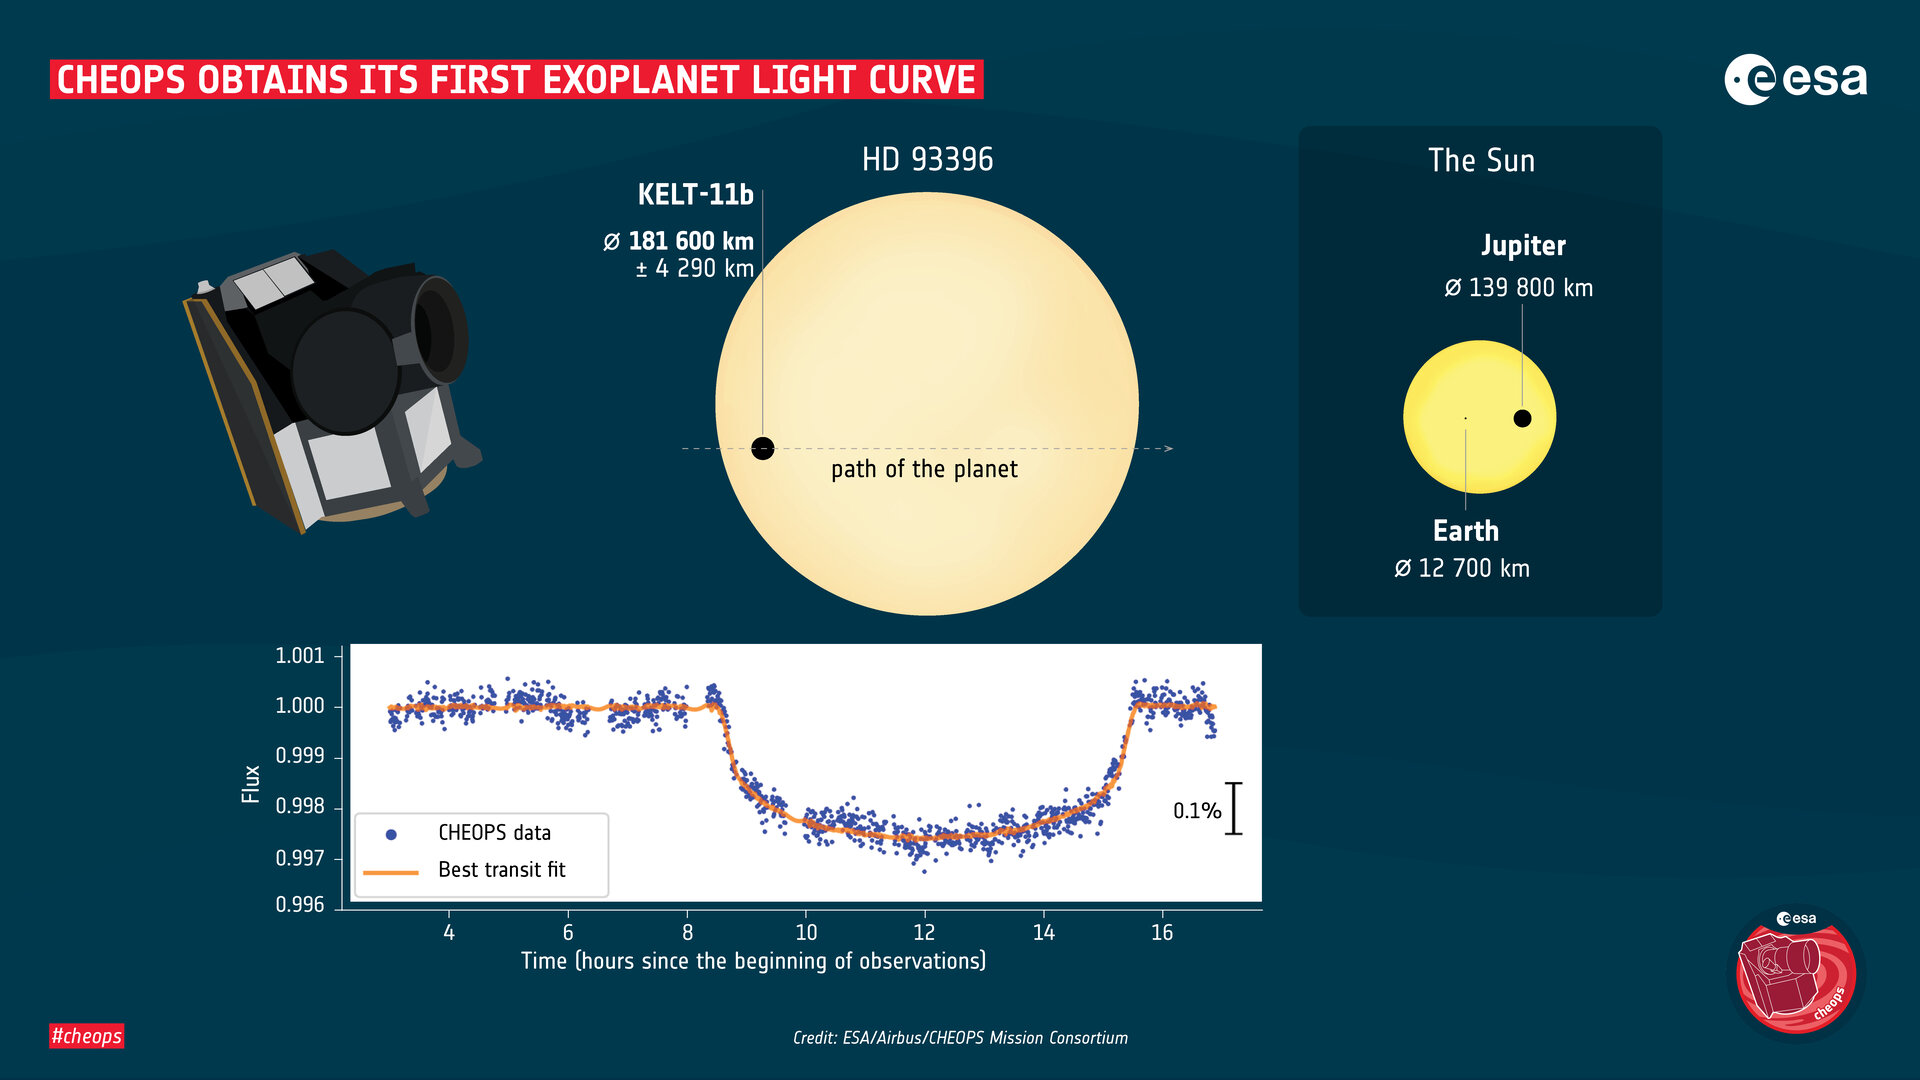 Cheops_obtains_its_first_exoplanet_light_curve_pillars.jpg